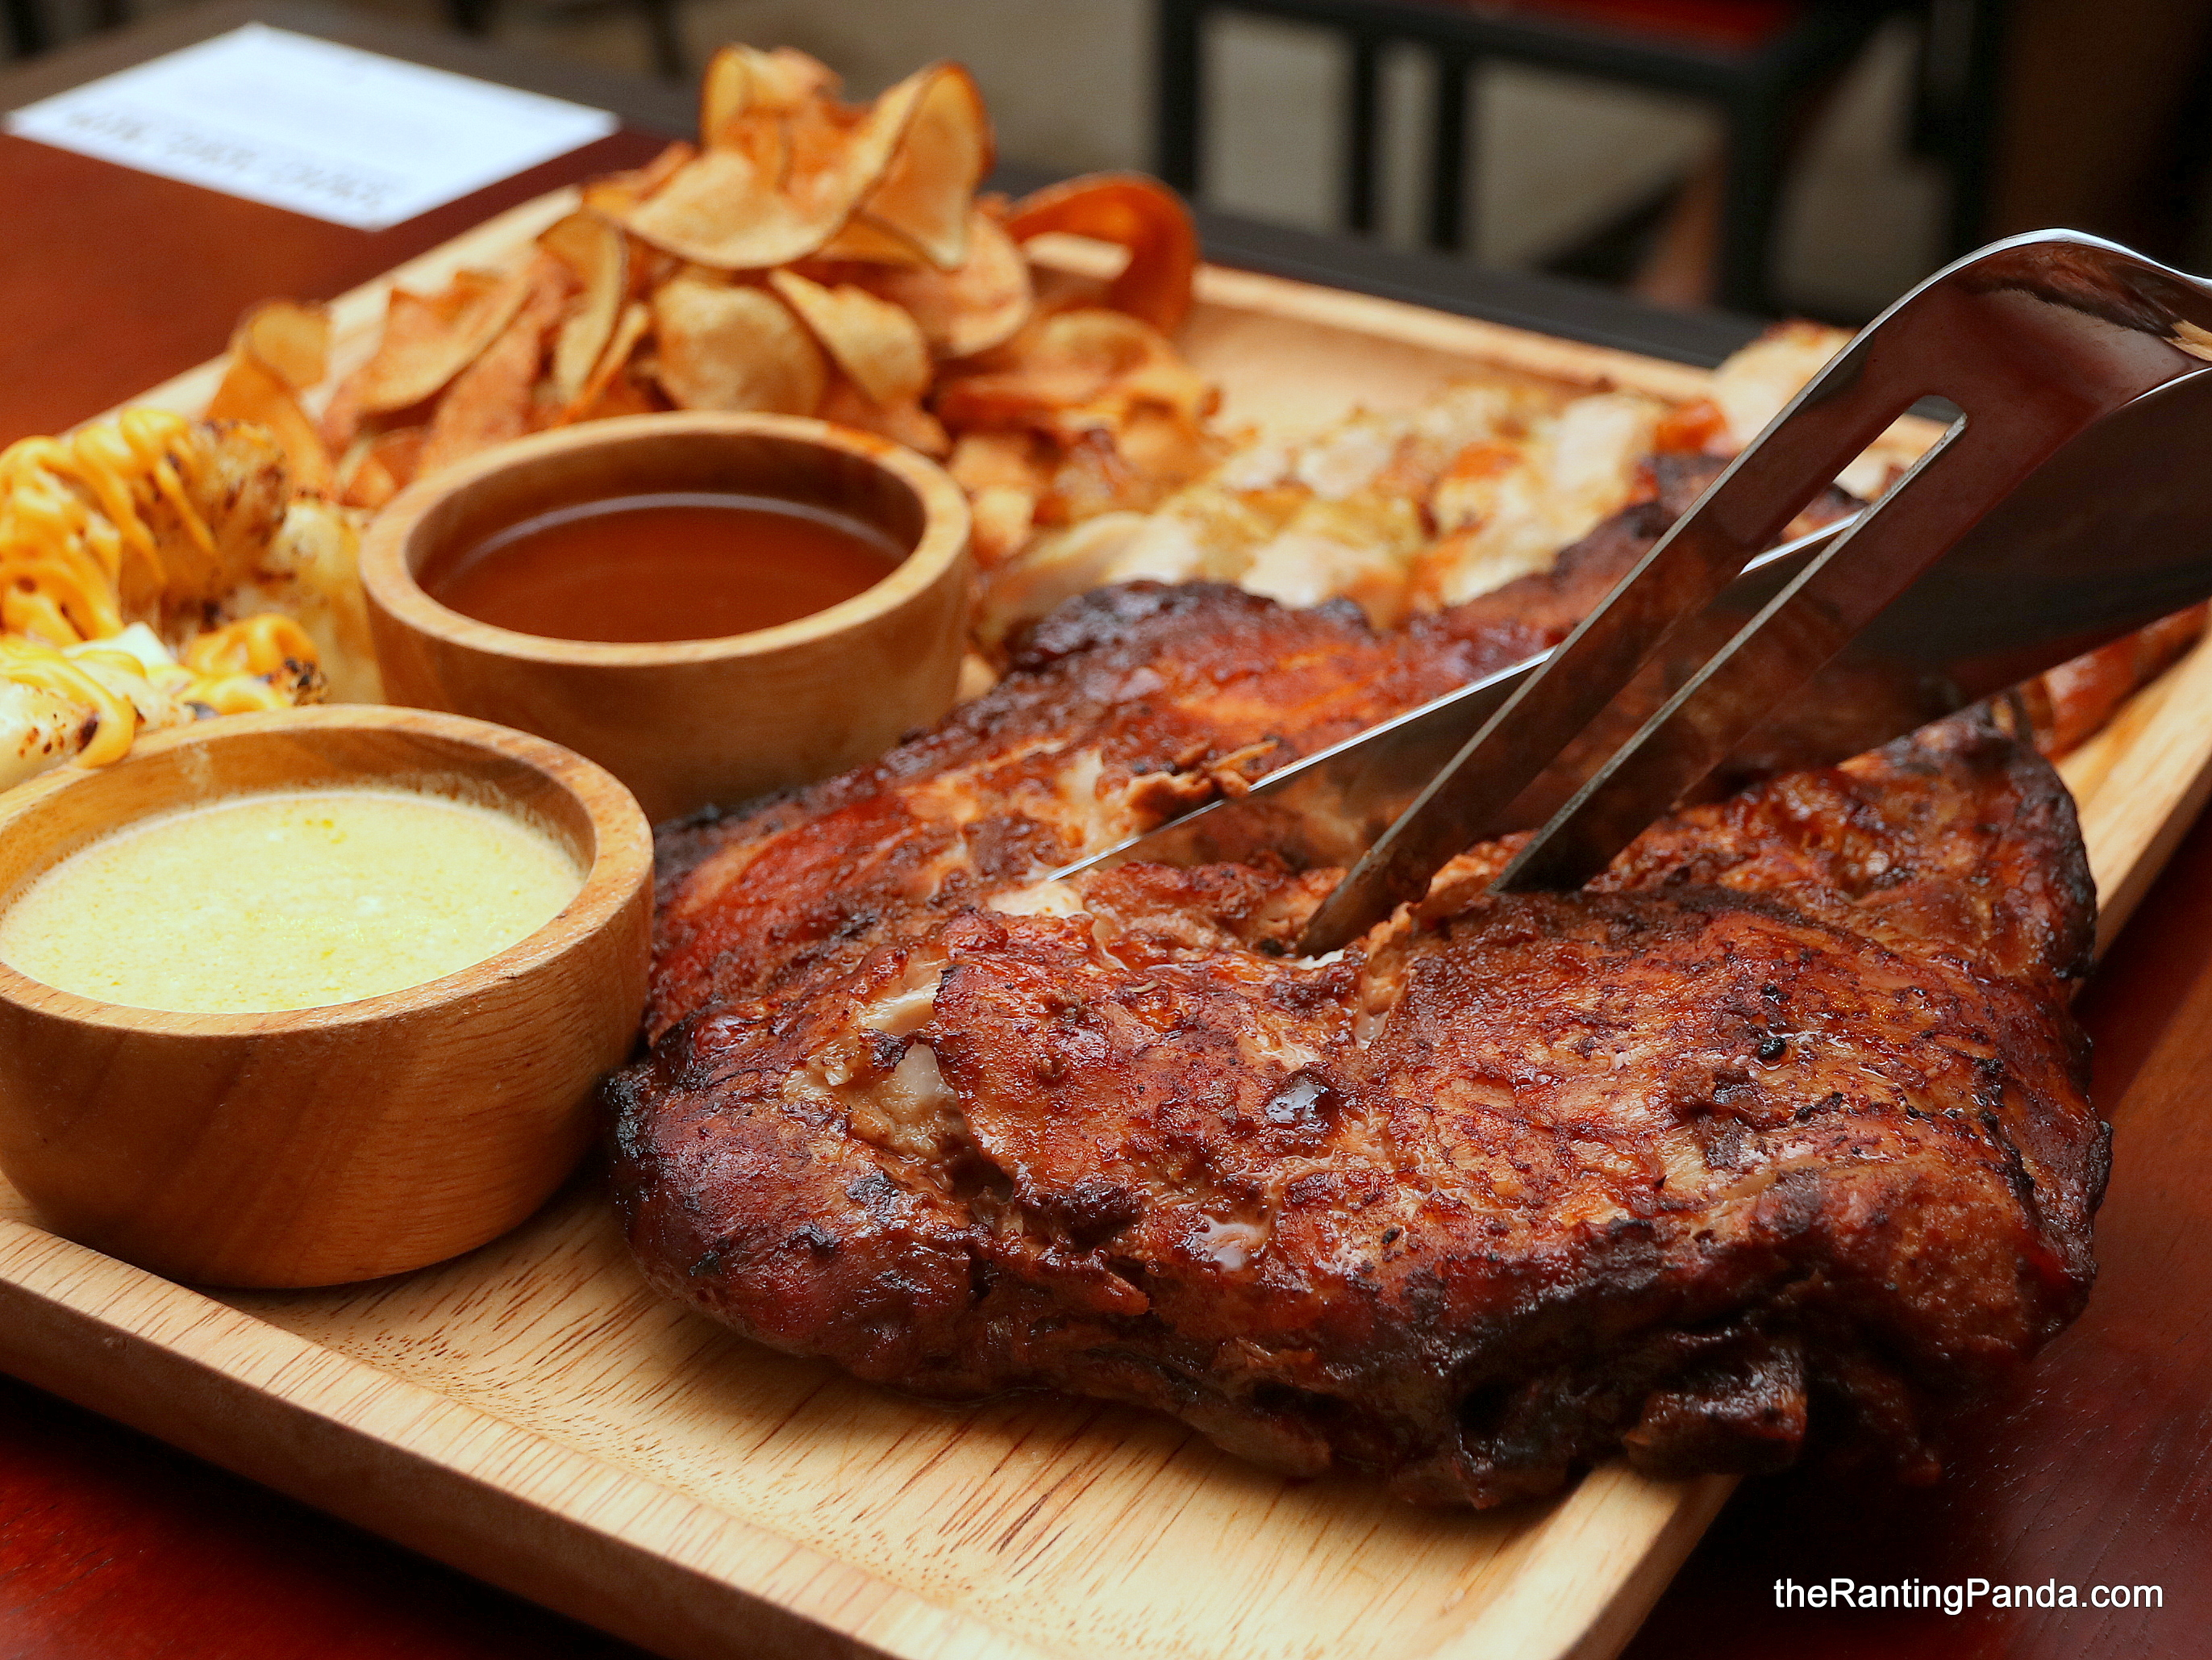 Food Review: Meat Market at Hougang One | Wood-Fired Grilled Meats in the North East